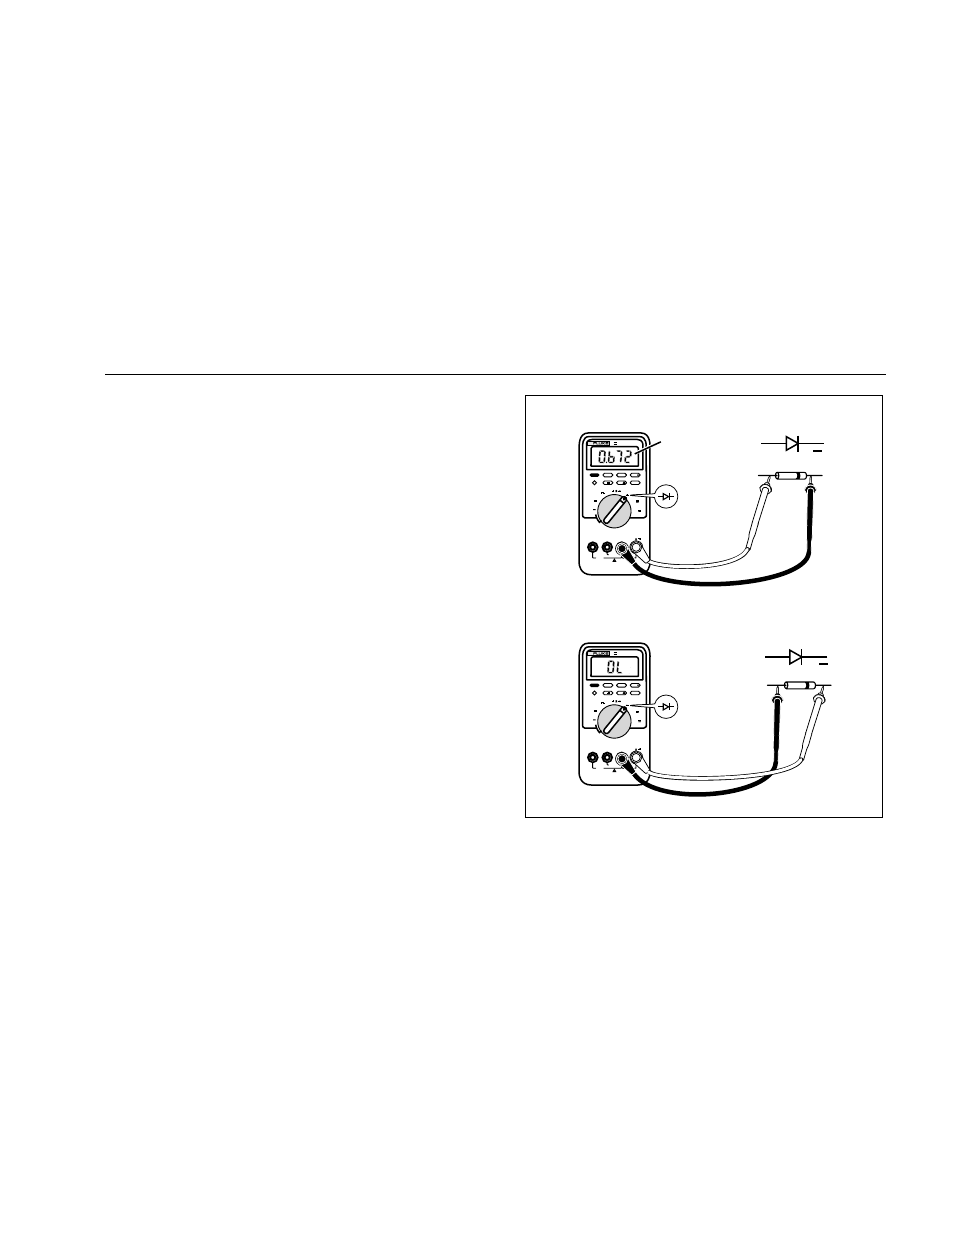 Diode Testing Tester Circuit Diodes Making Measurements Fluke Iii User Manual Page 954x1235